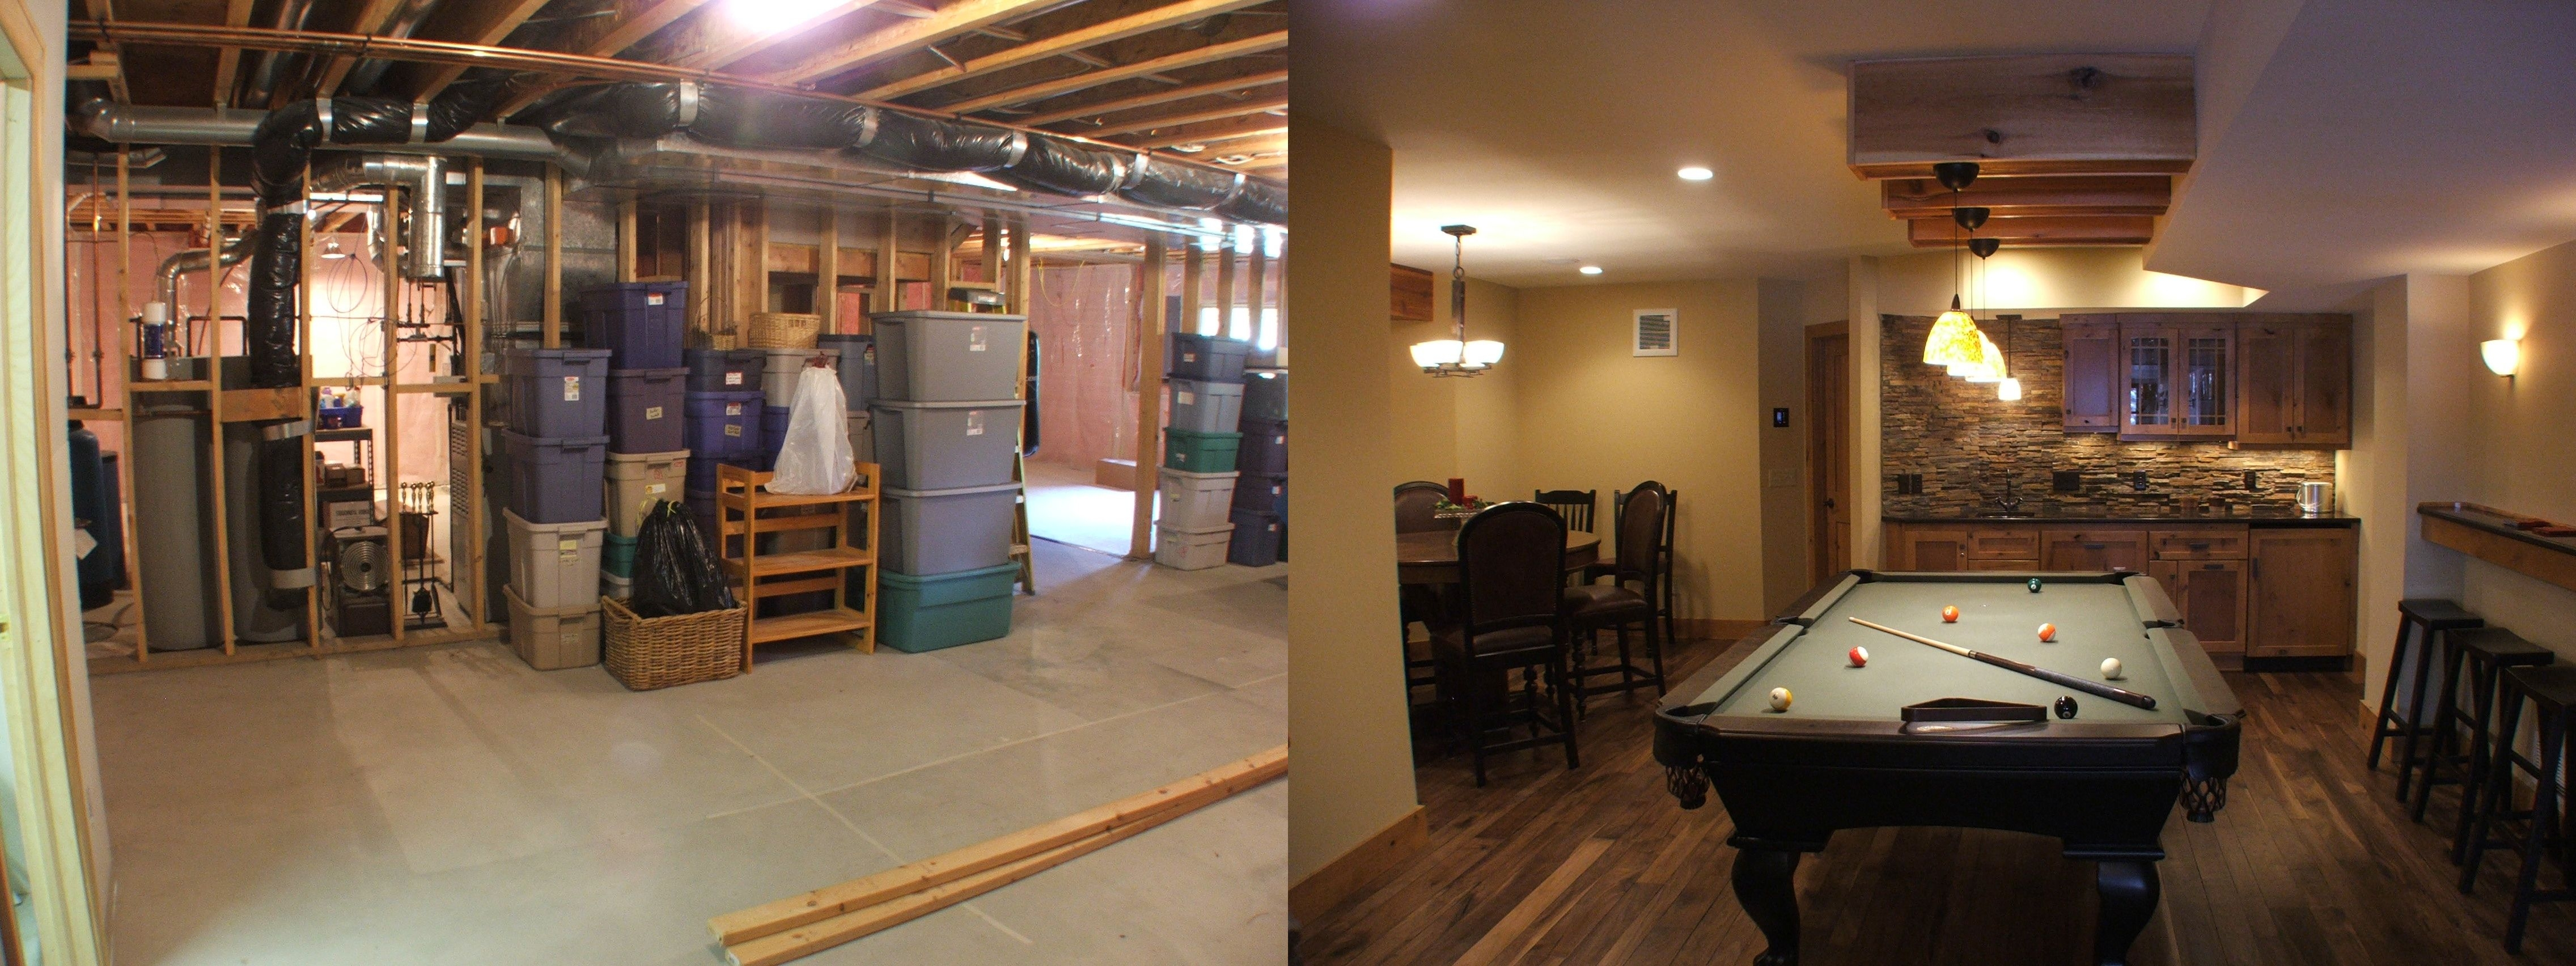 Basement Finishing Ideas Before And After